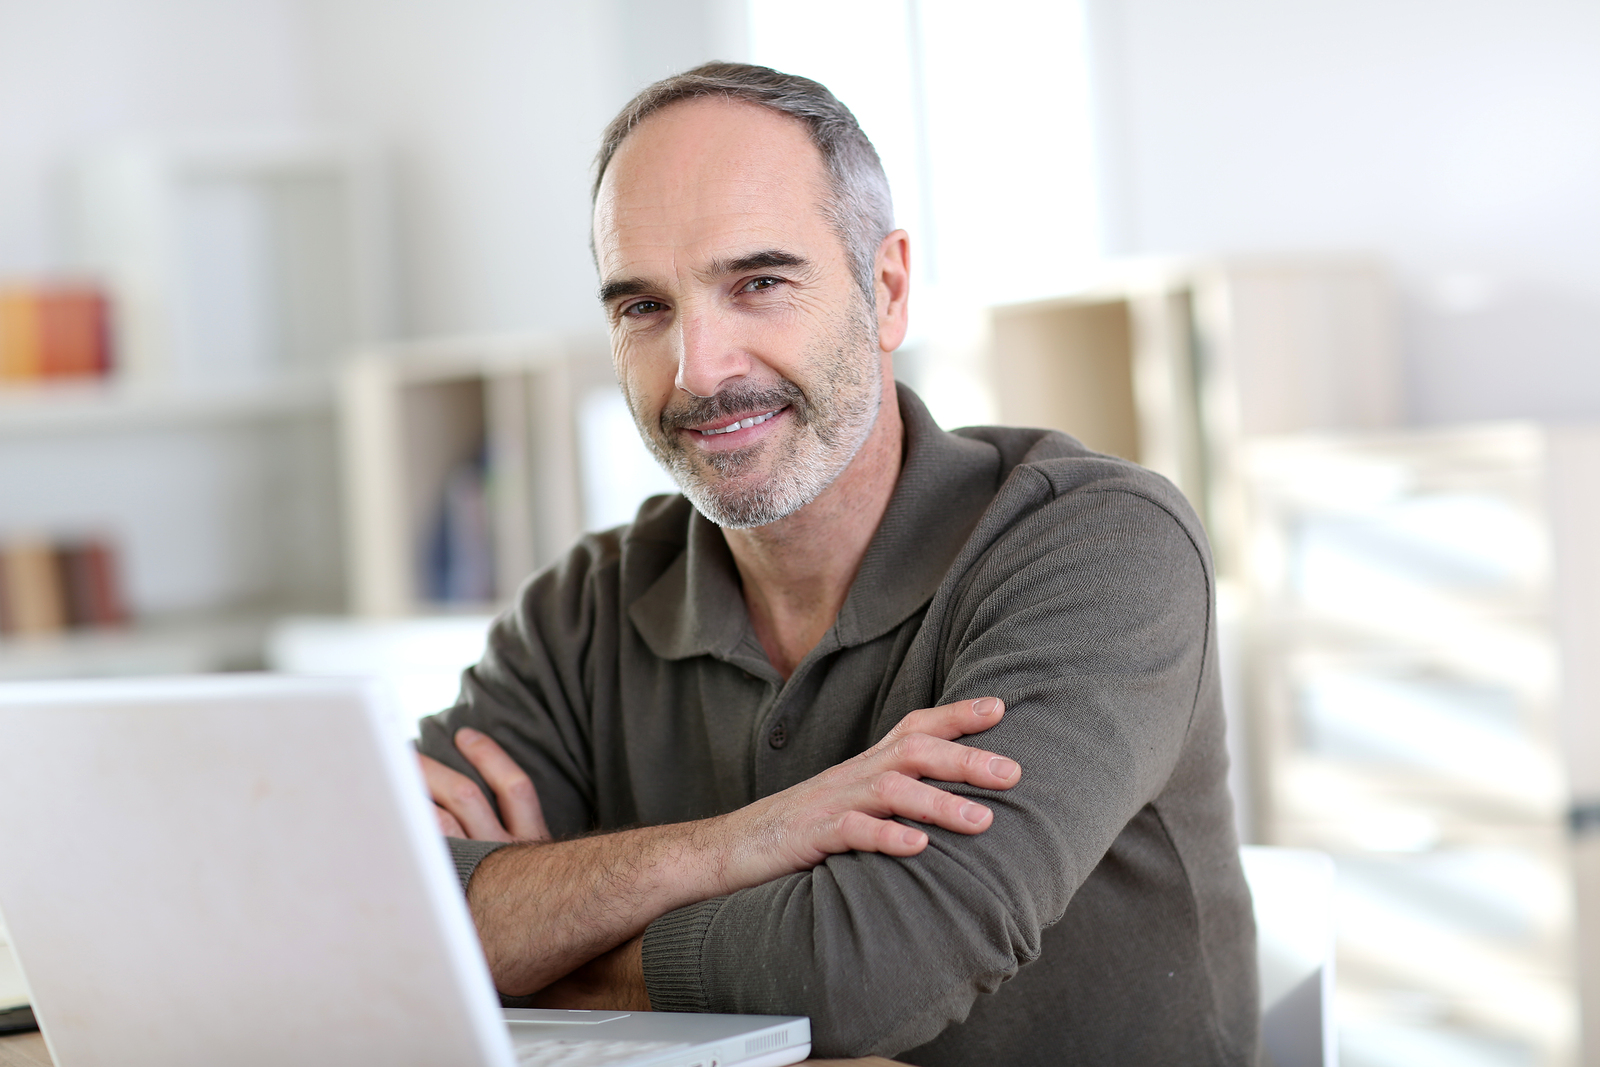 Senior man working from home with laptop computer